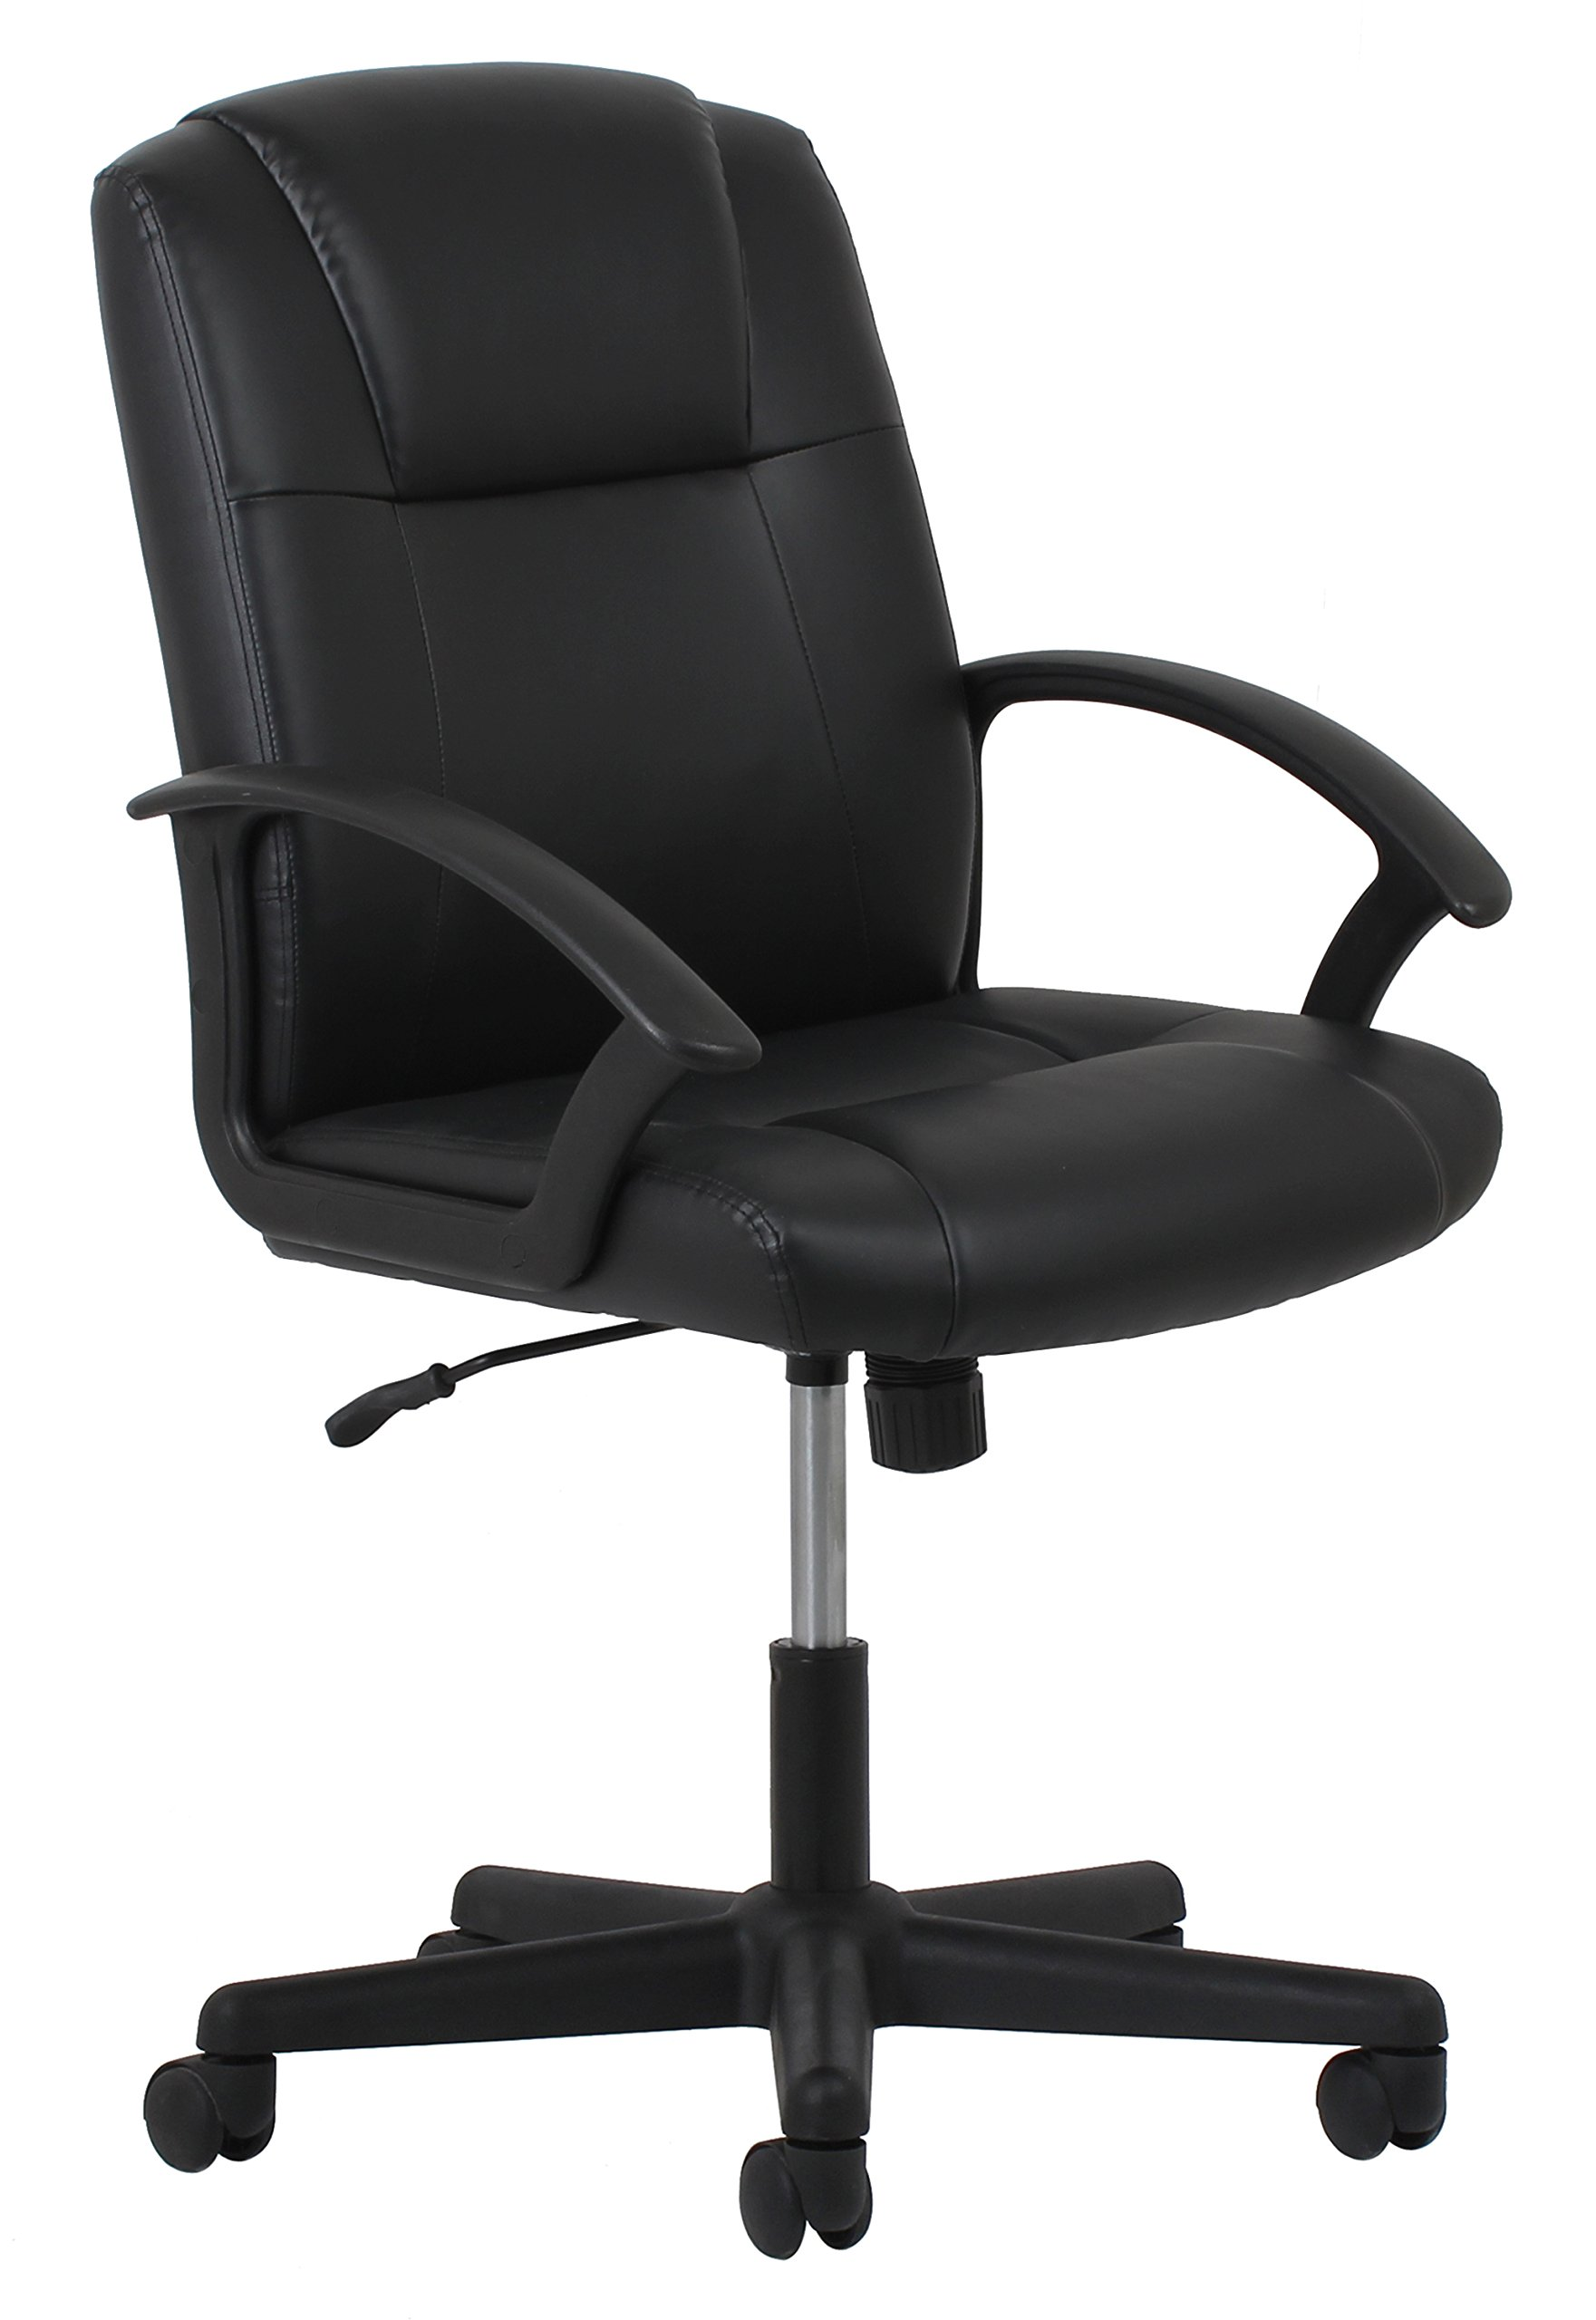 Essentials Leather Executive Office/Computer Chair with Arms - Ergonomic Swivel Chair (ESS-6000) by OFM